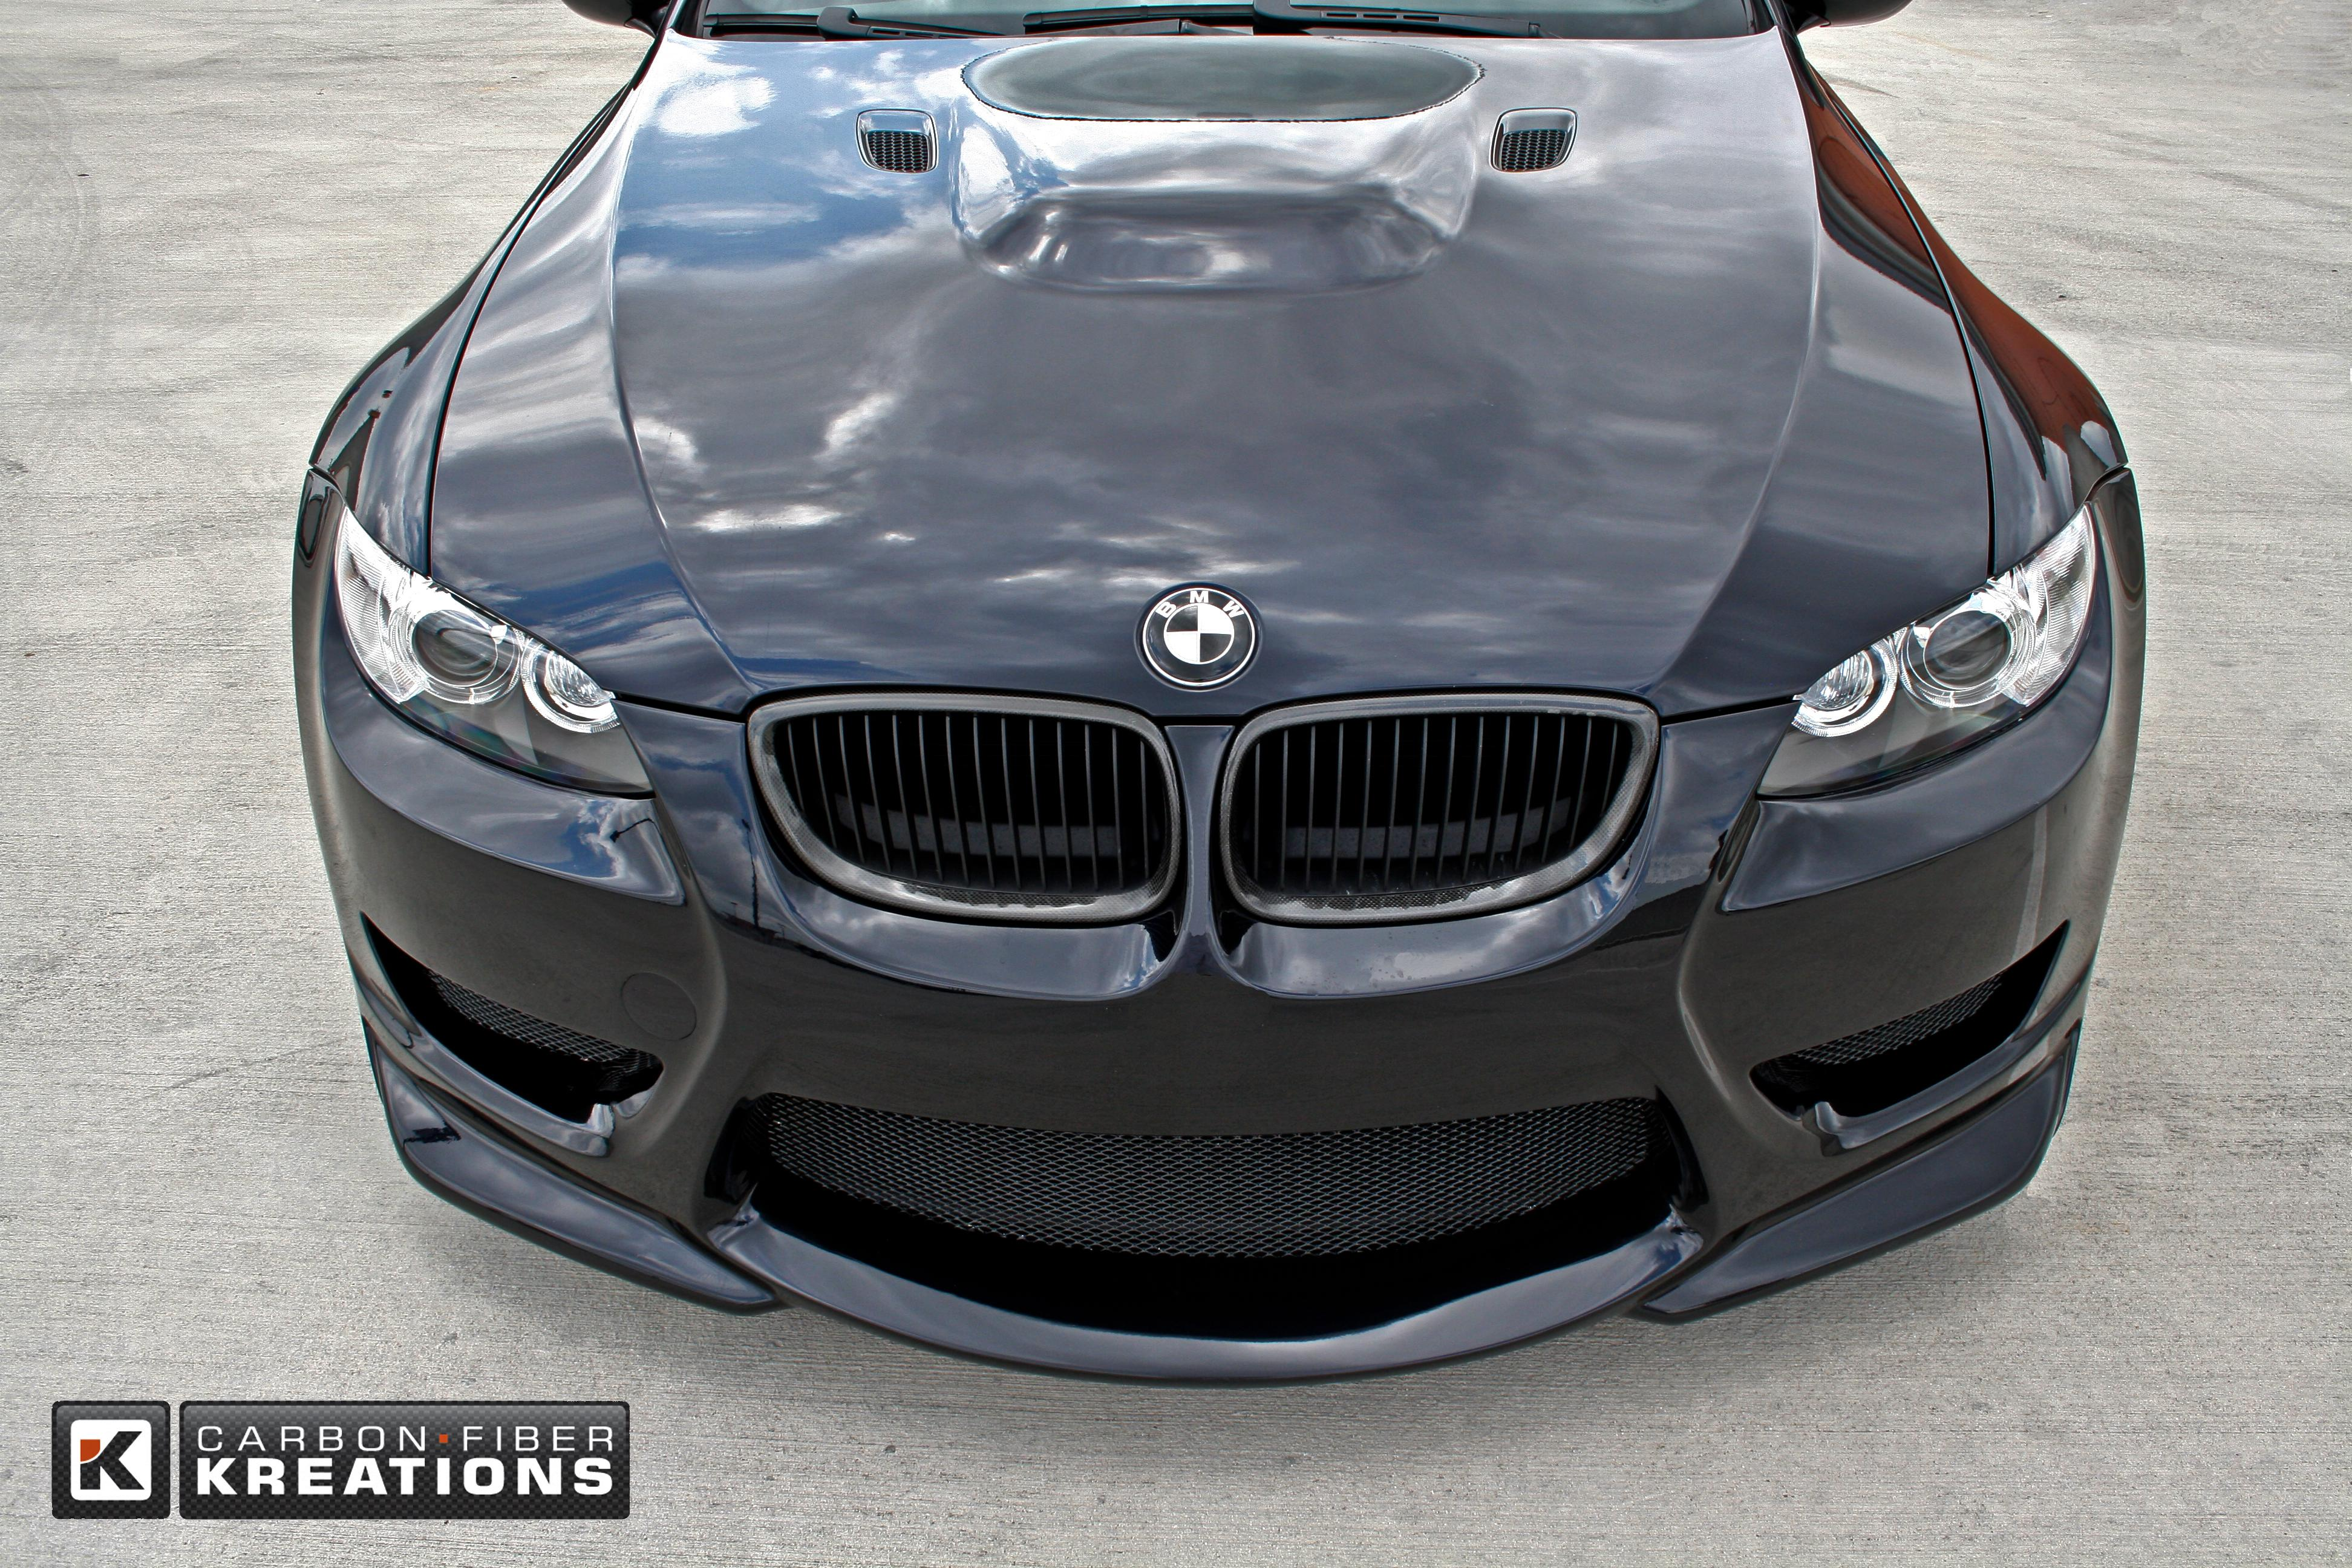 carbonkreations 2009 bmw m3 specs photos modification info at cardomain. Black Bedroom Furniture Sets. Home Design Ideas